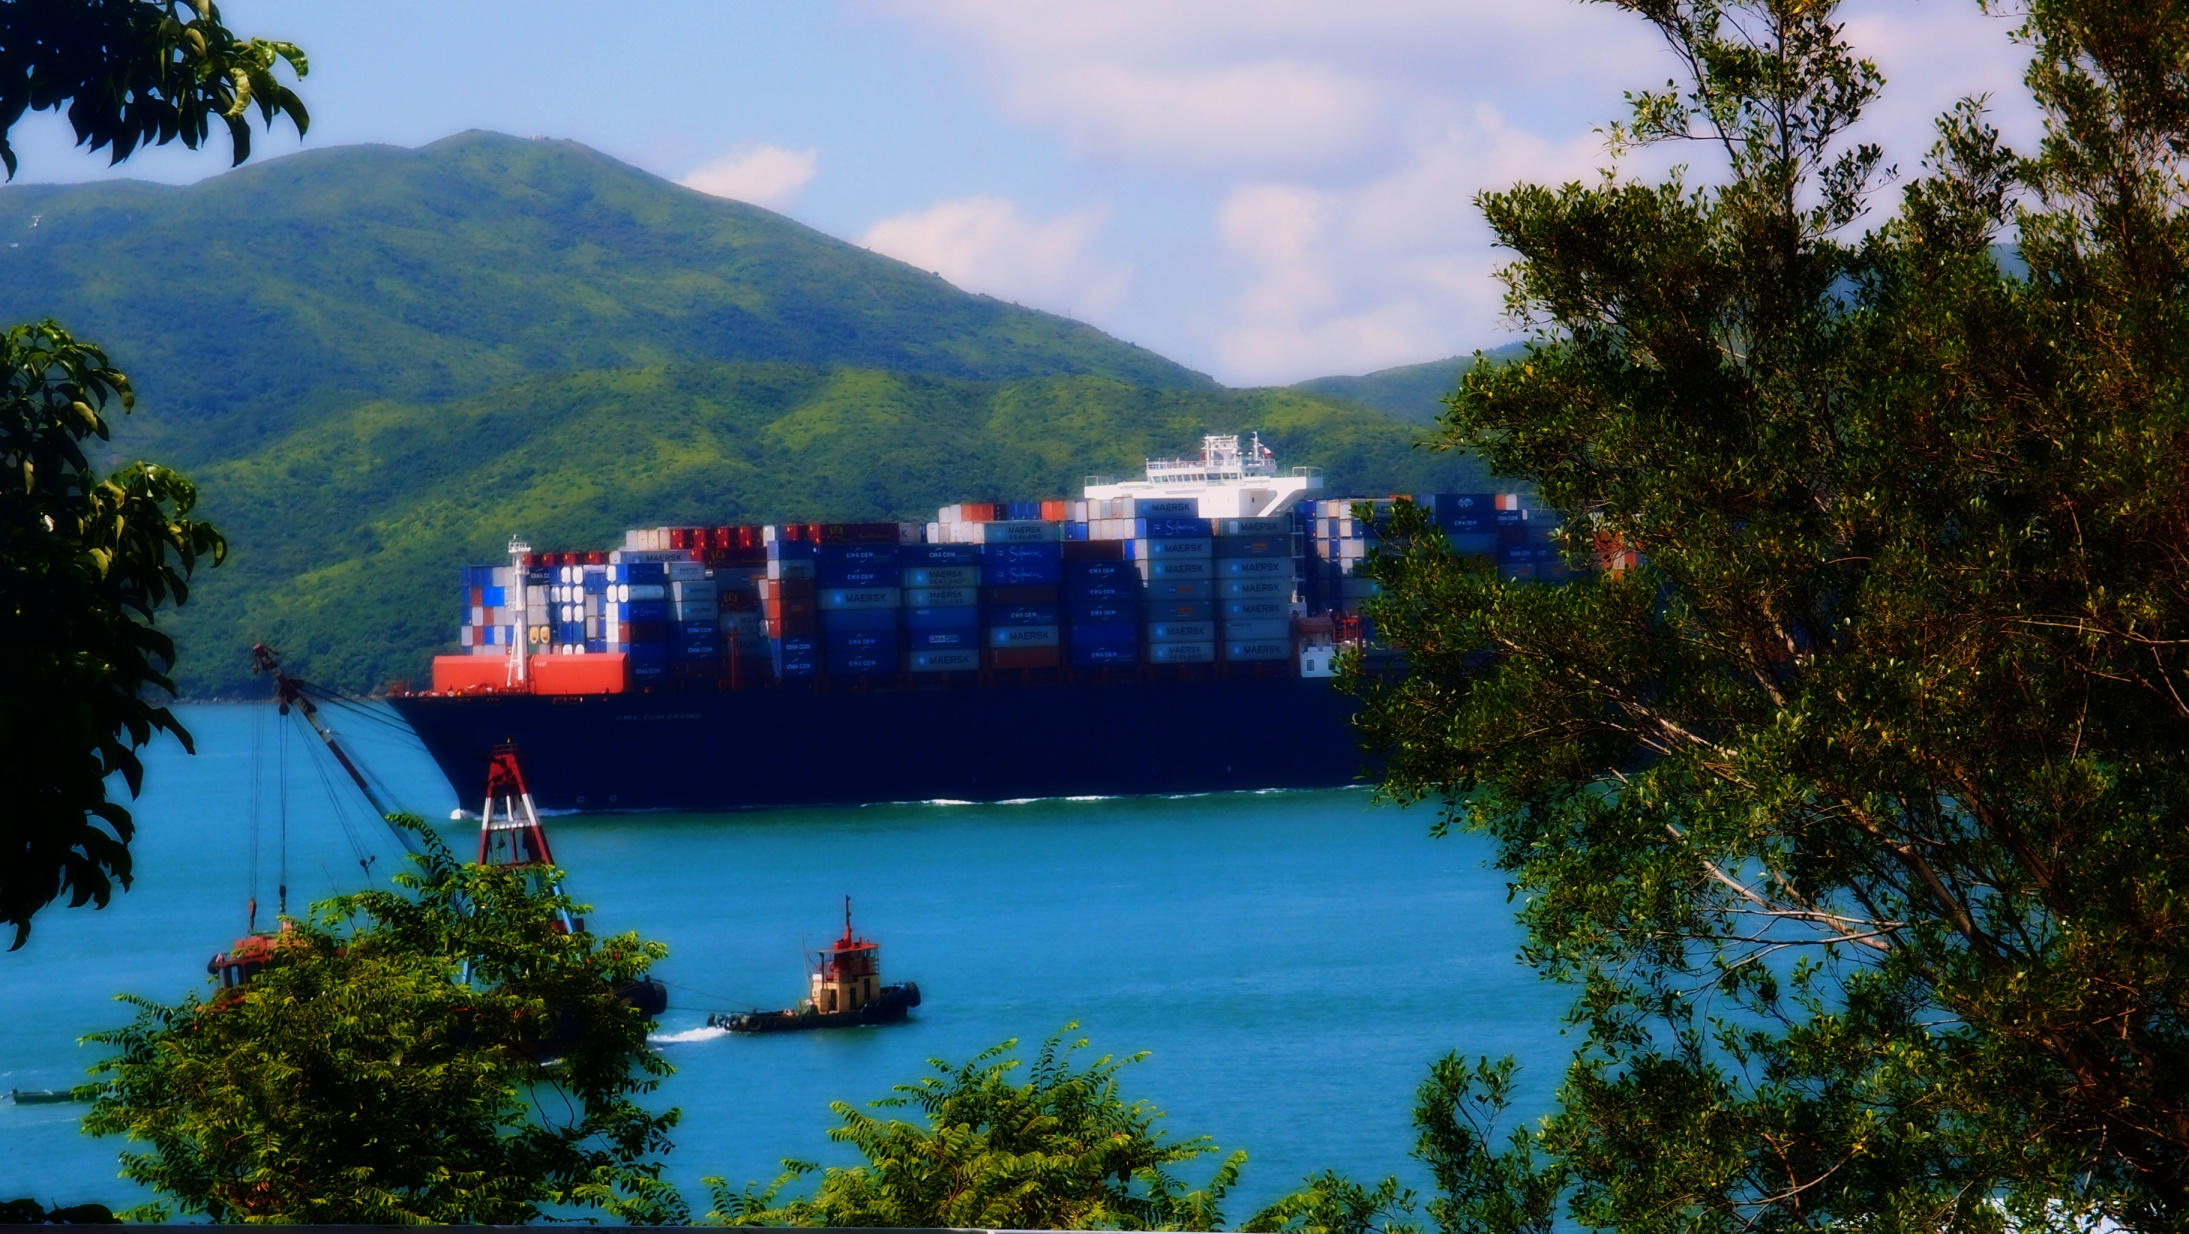 A very large container ship